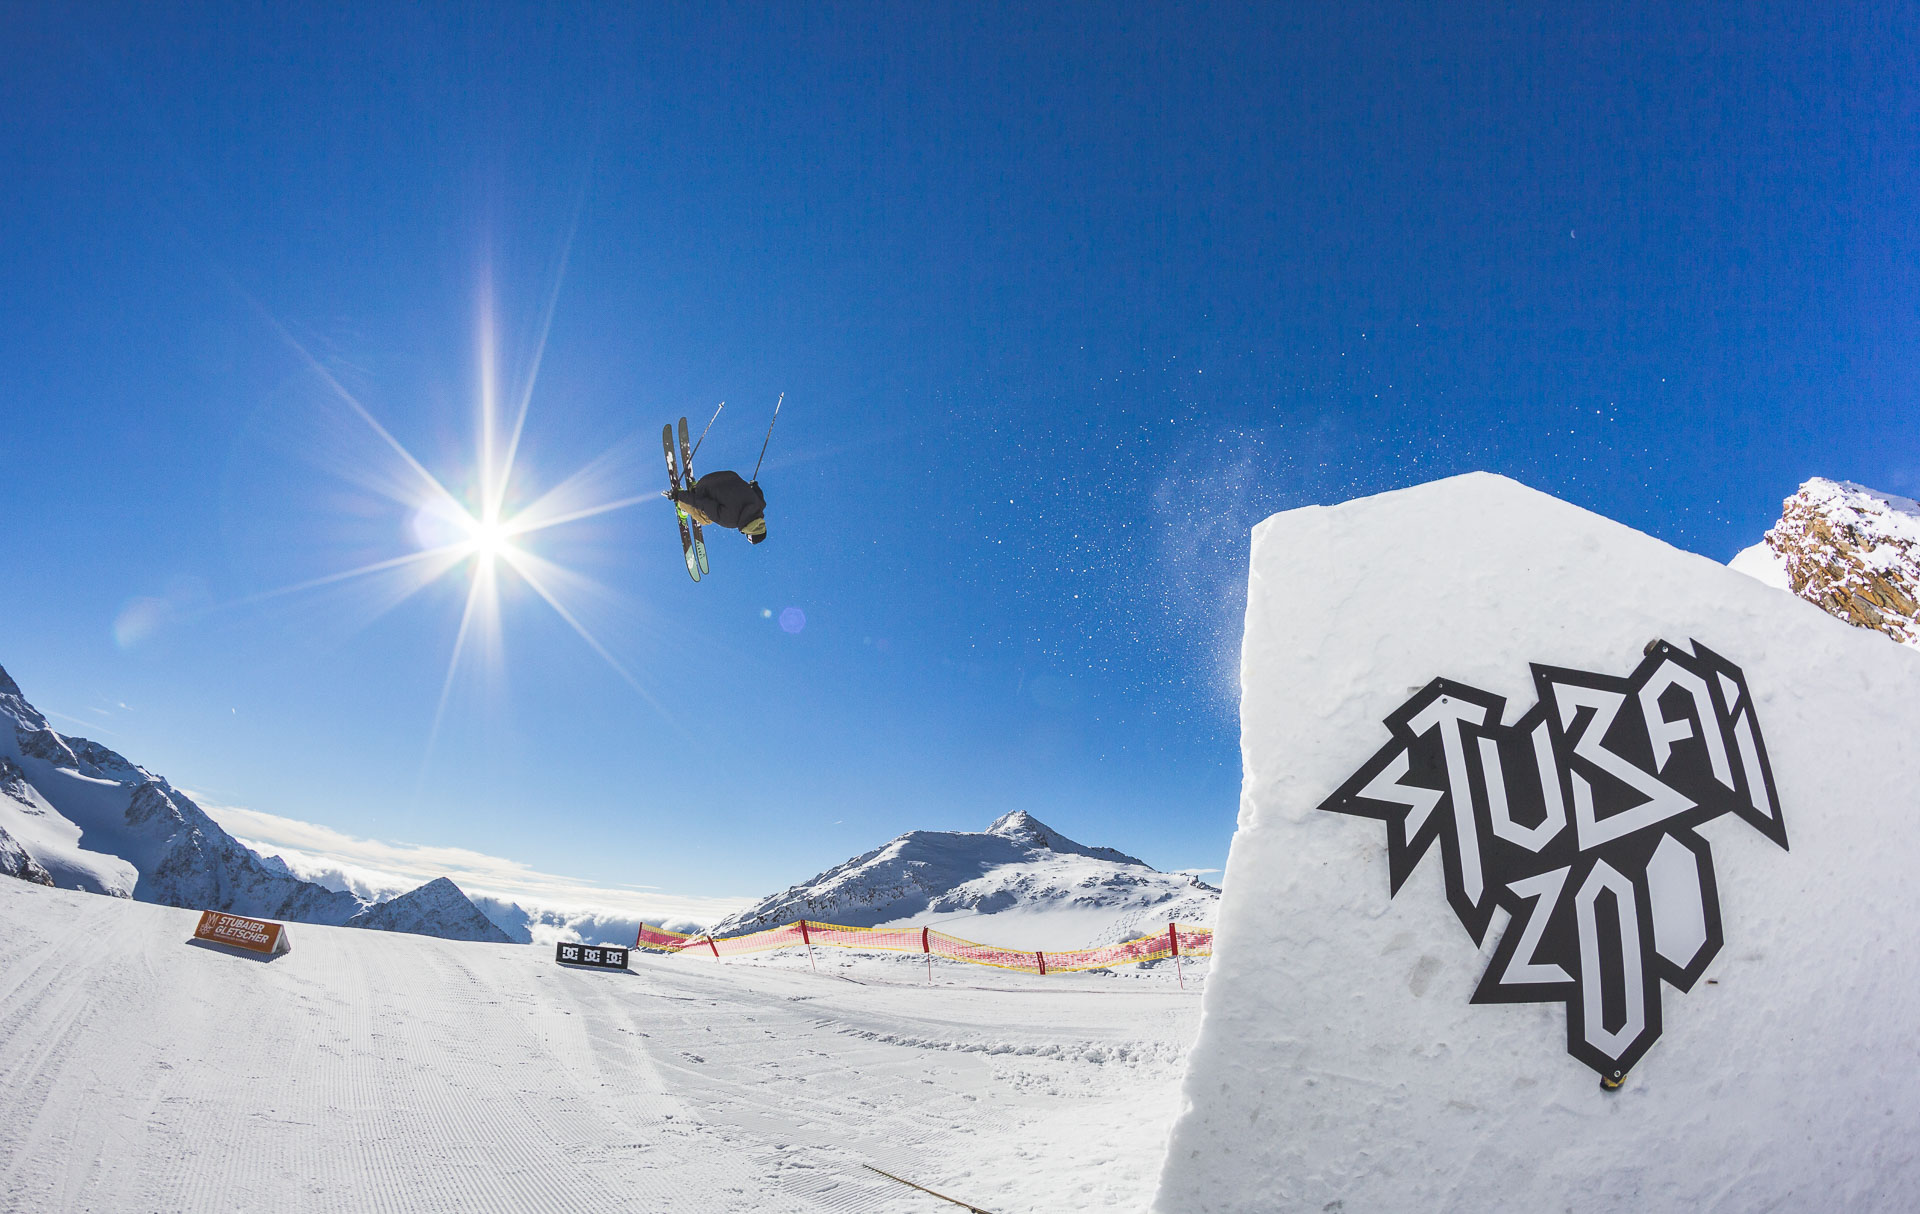 Preview: Die Spring Season 2018 im Stubai Zoo